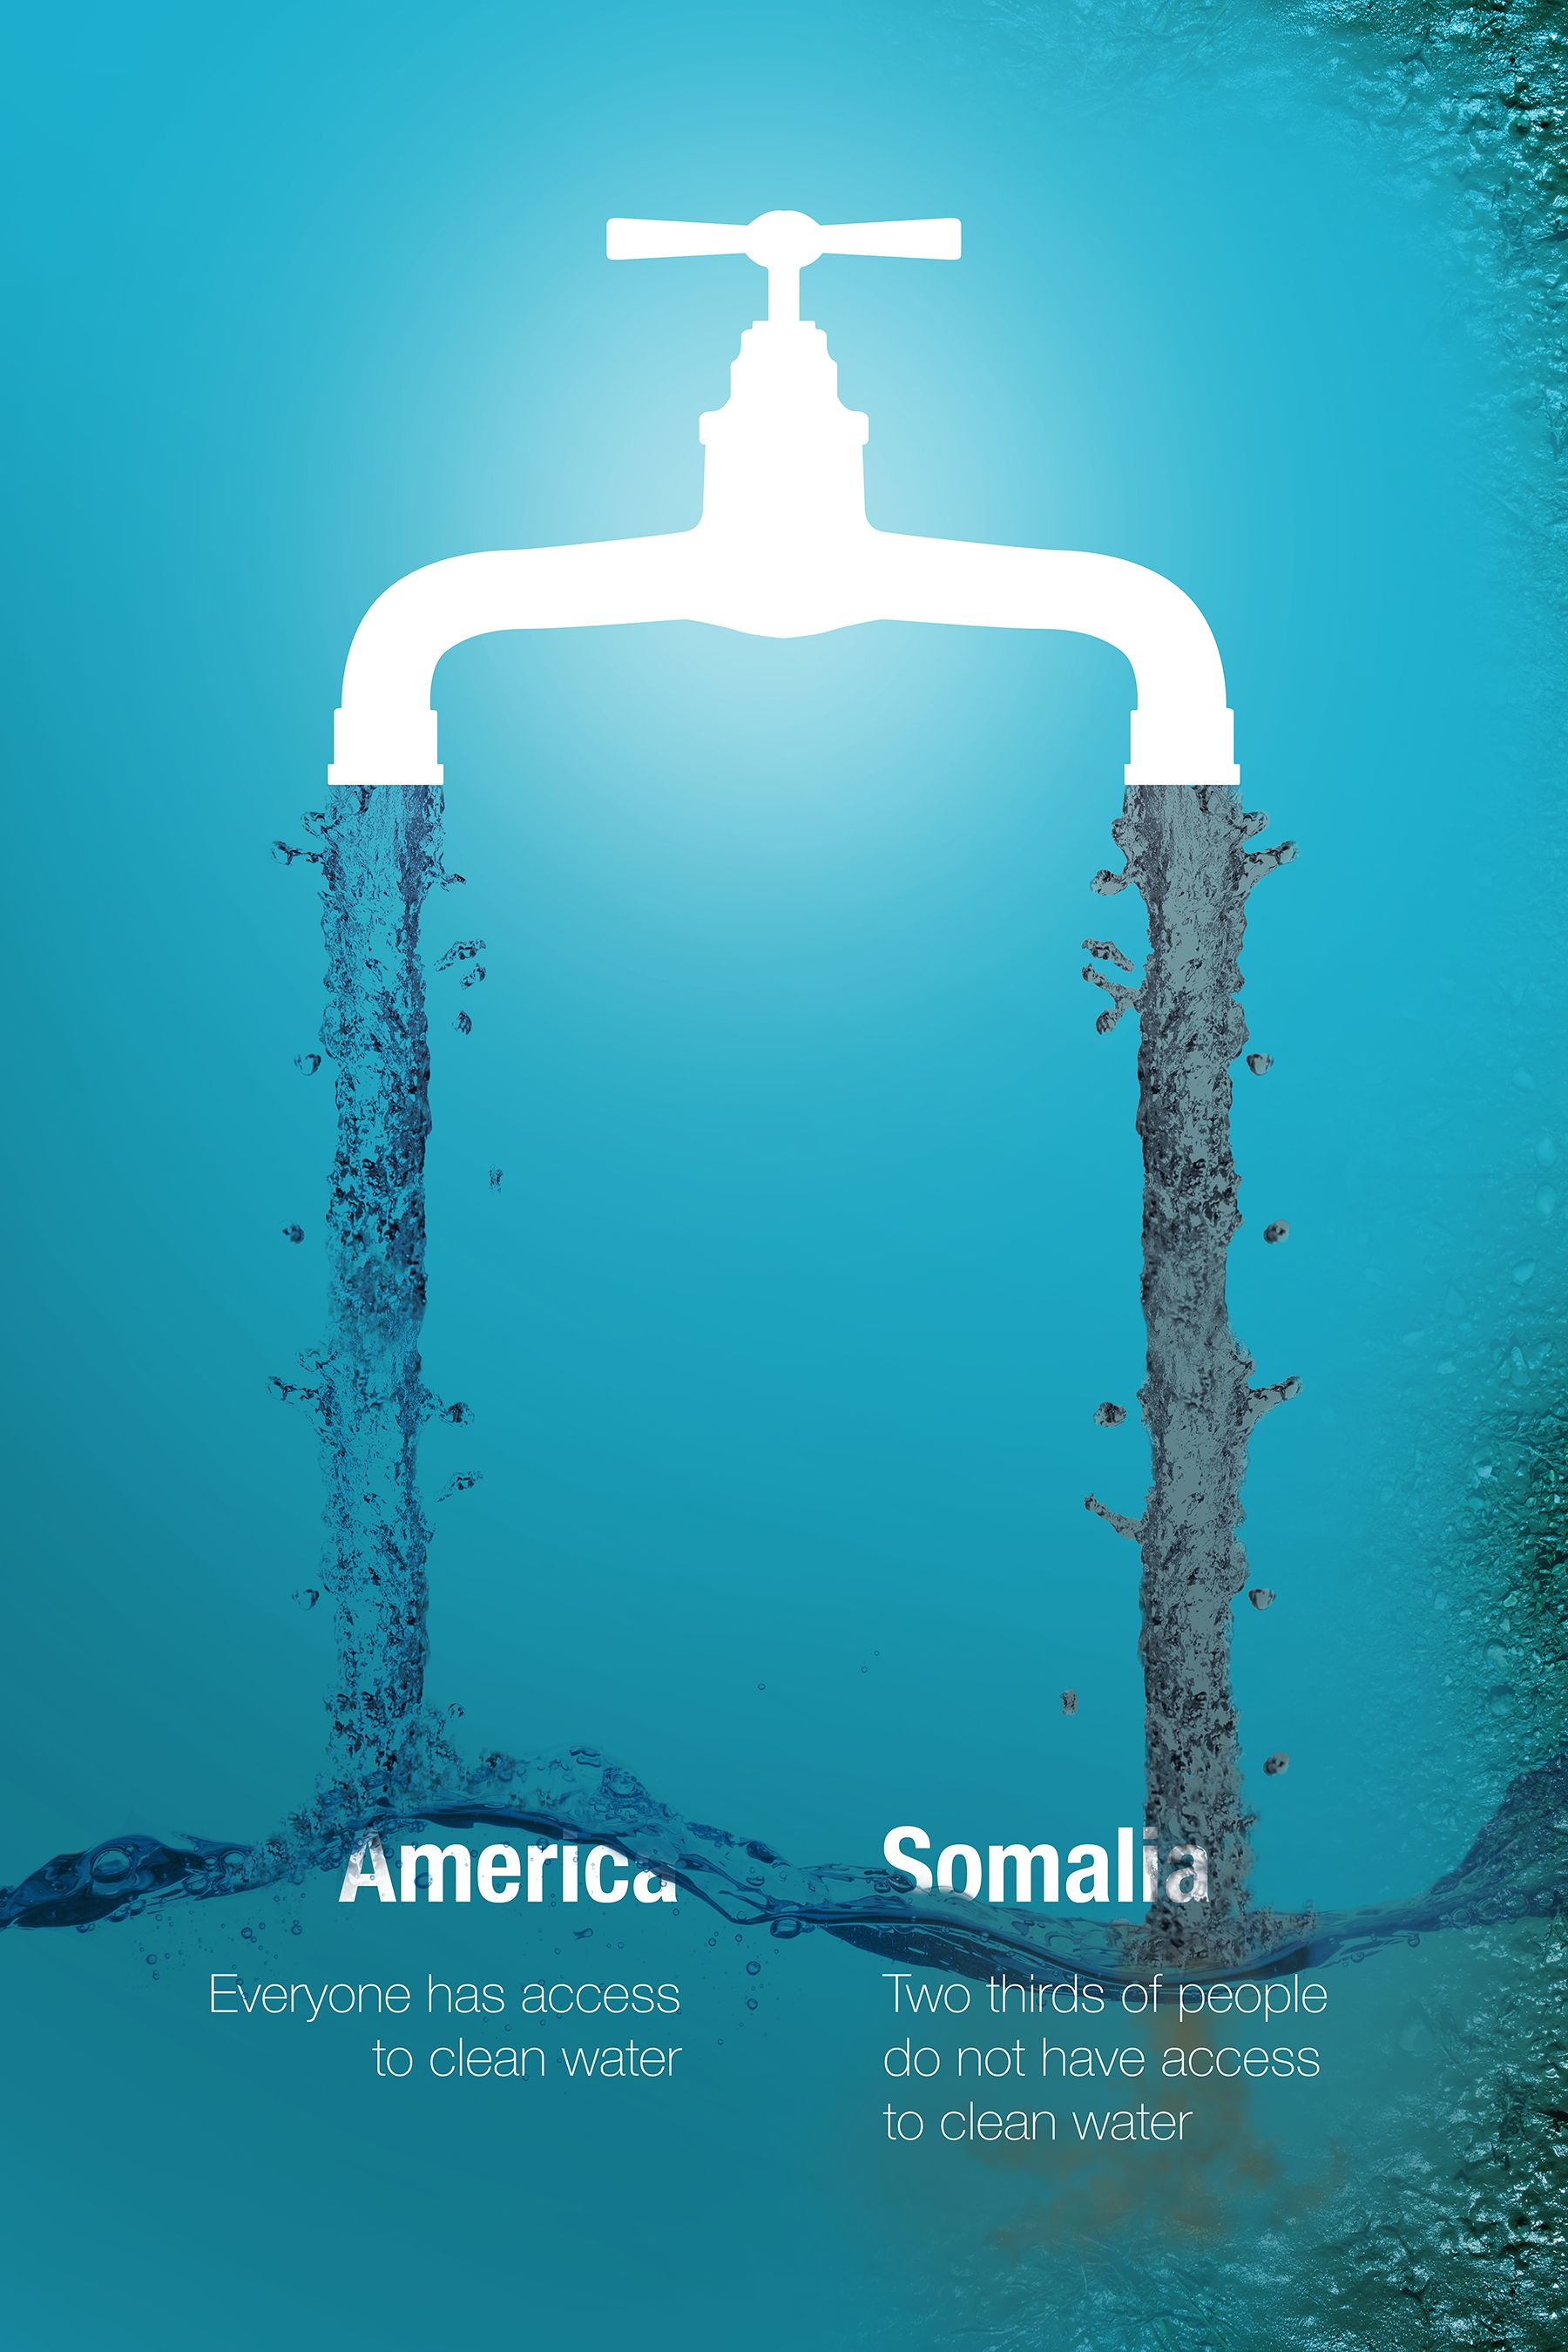 water posters ideas - Google Search | water charity ...